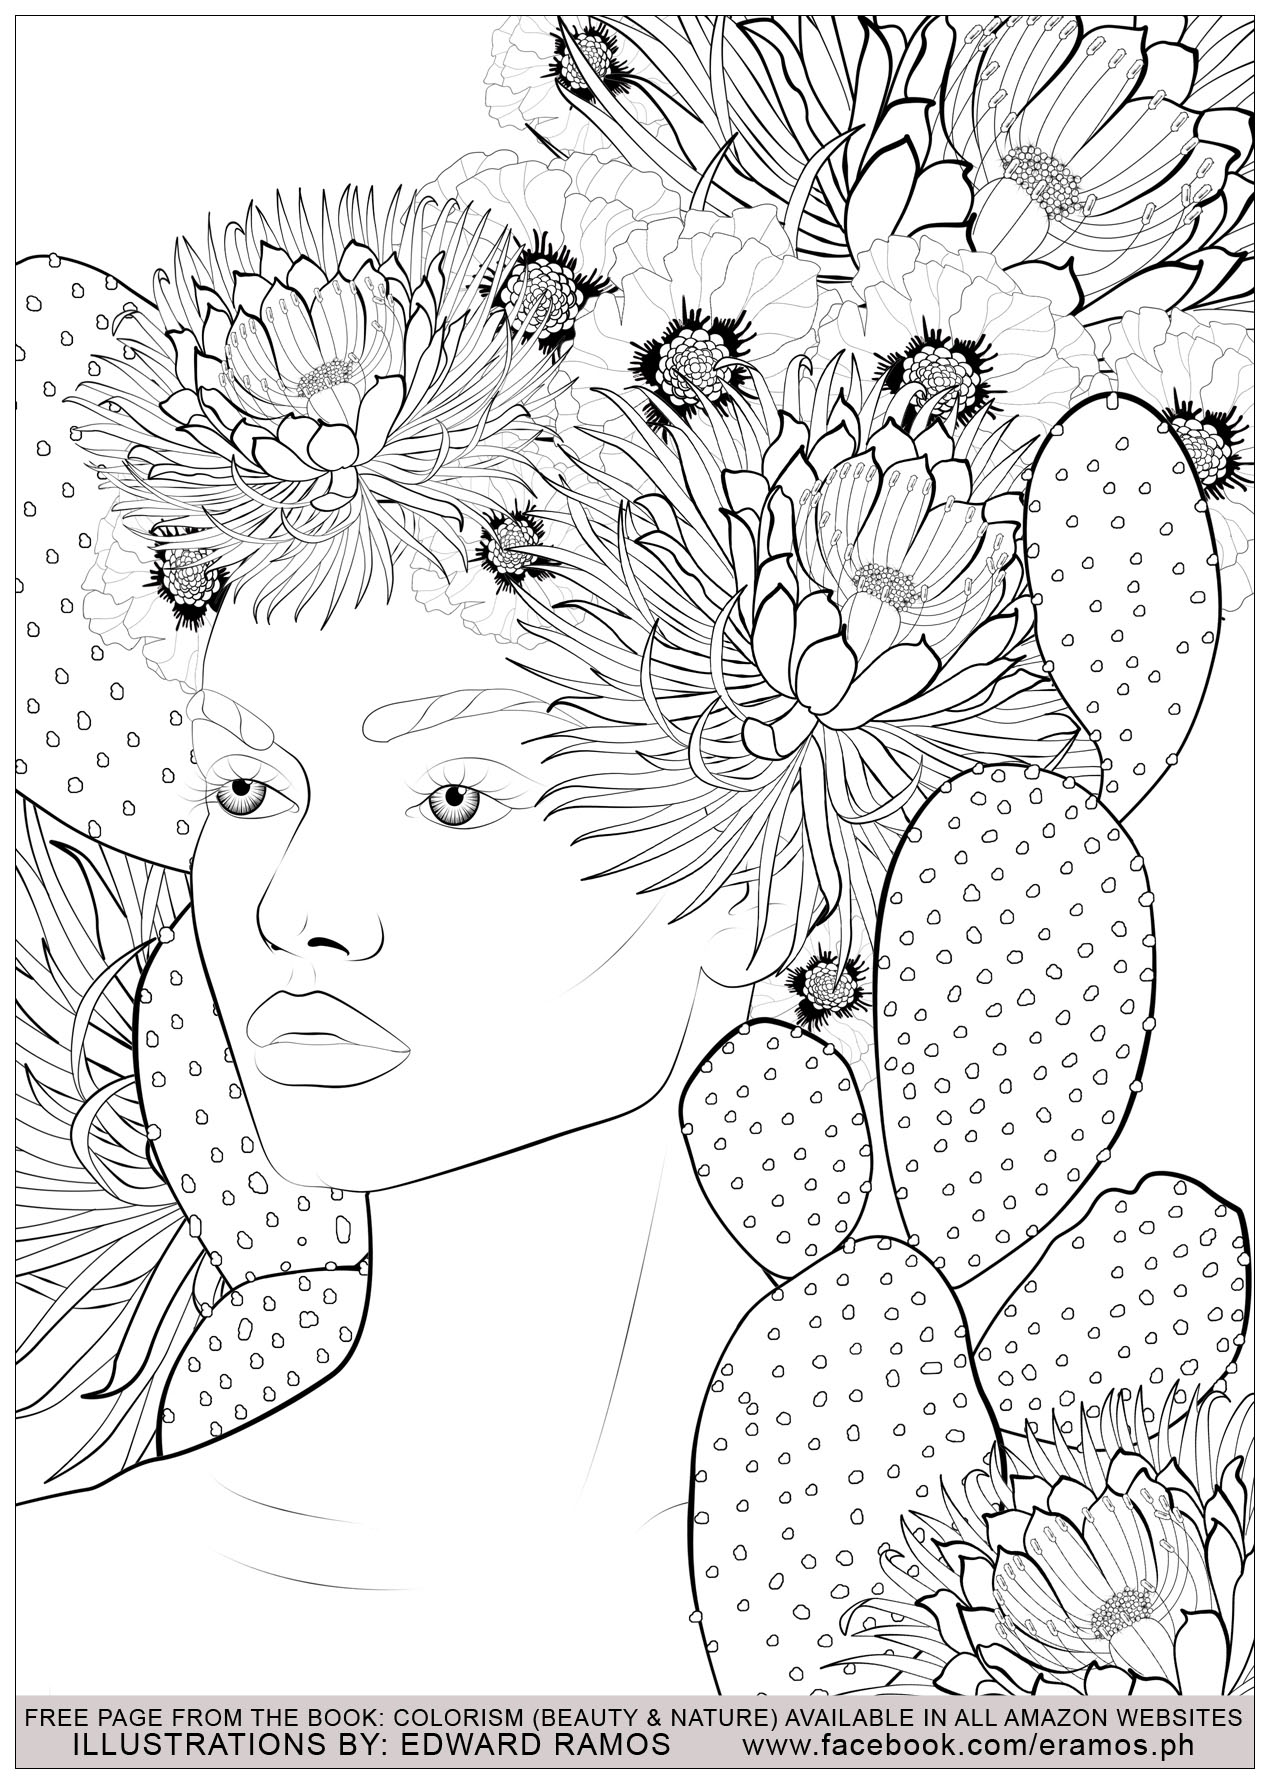 coloriage beauty and nature edward ramos 13